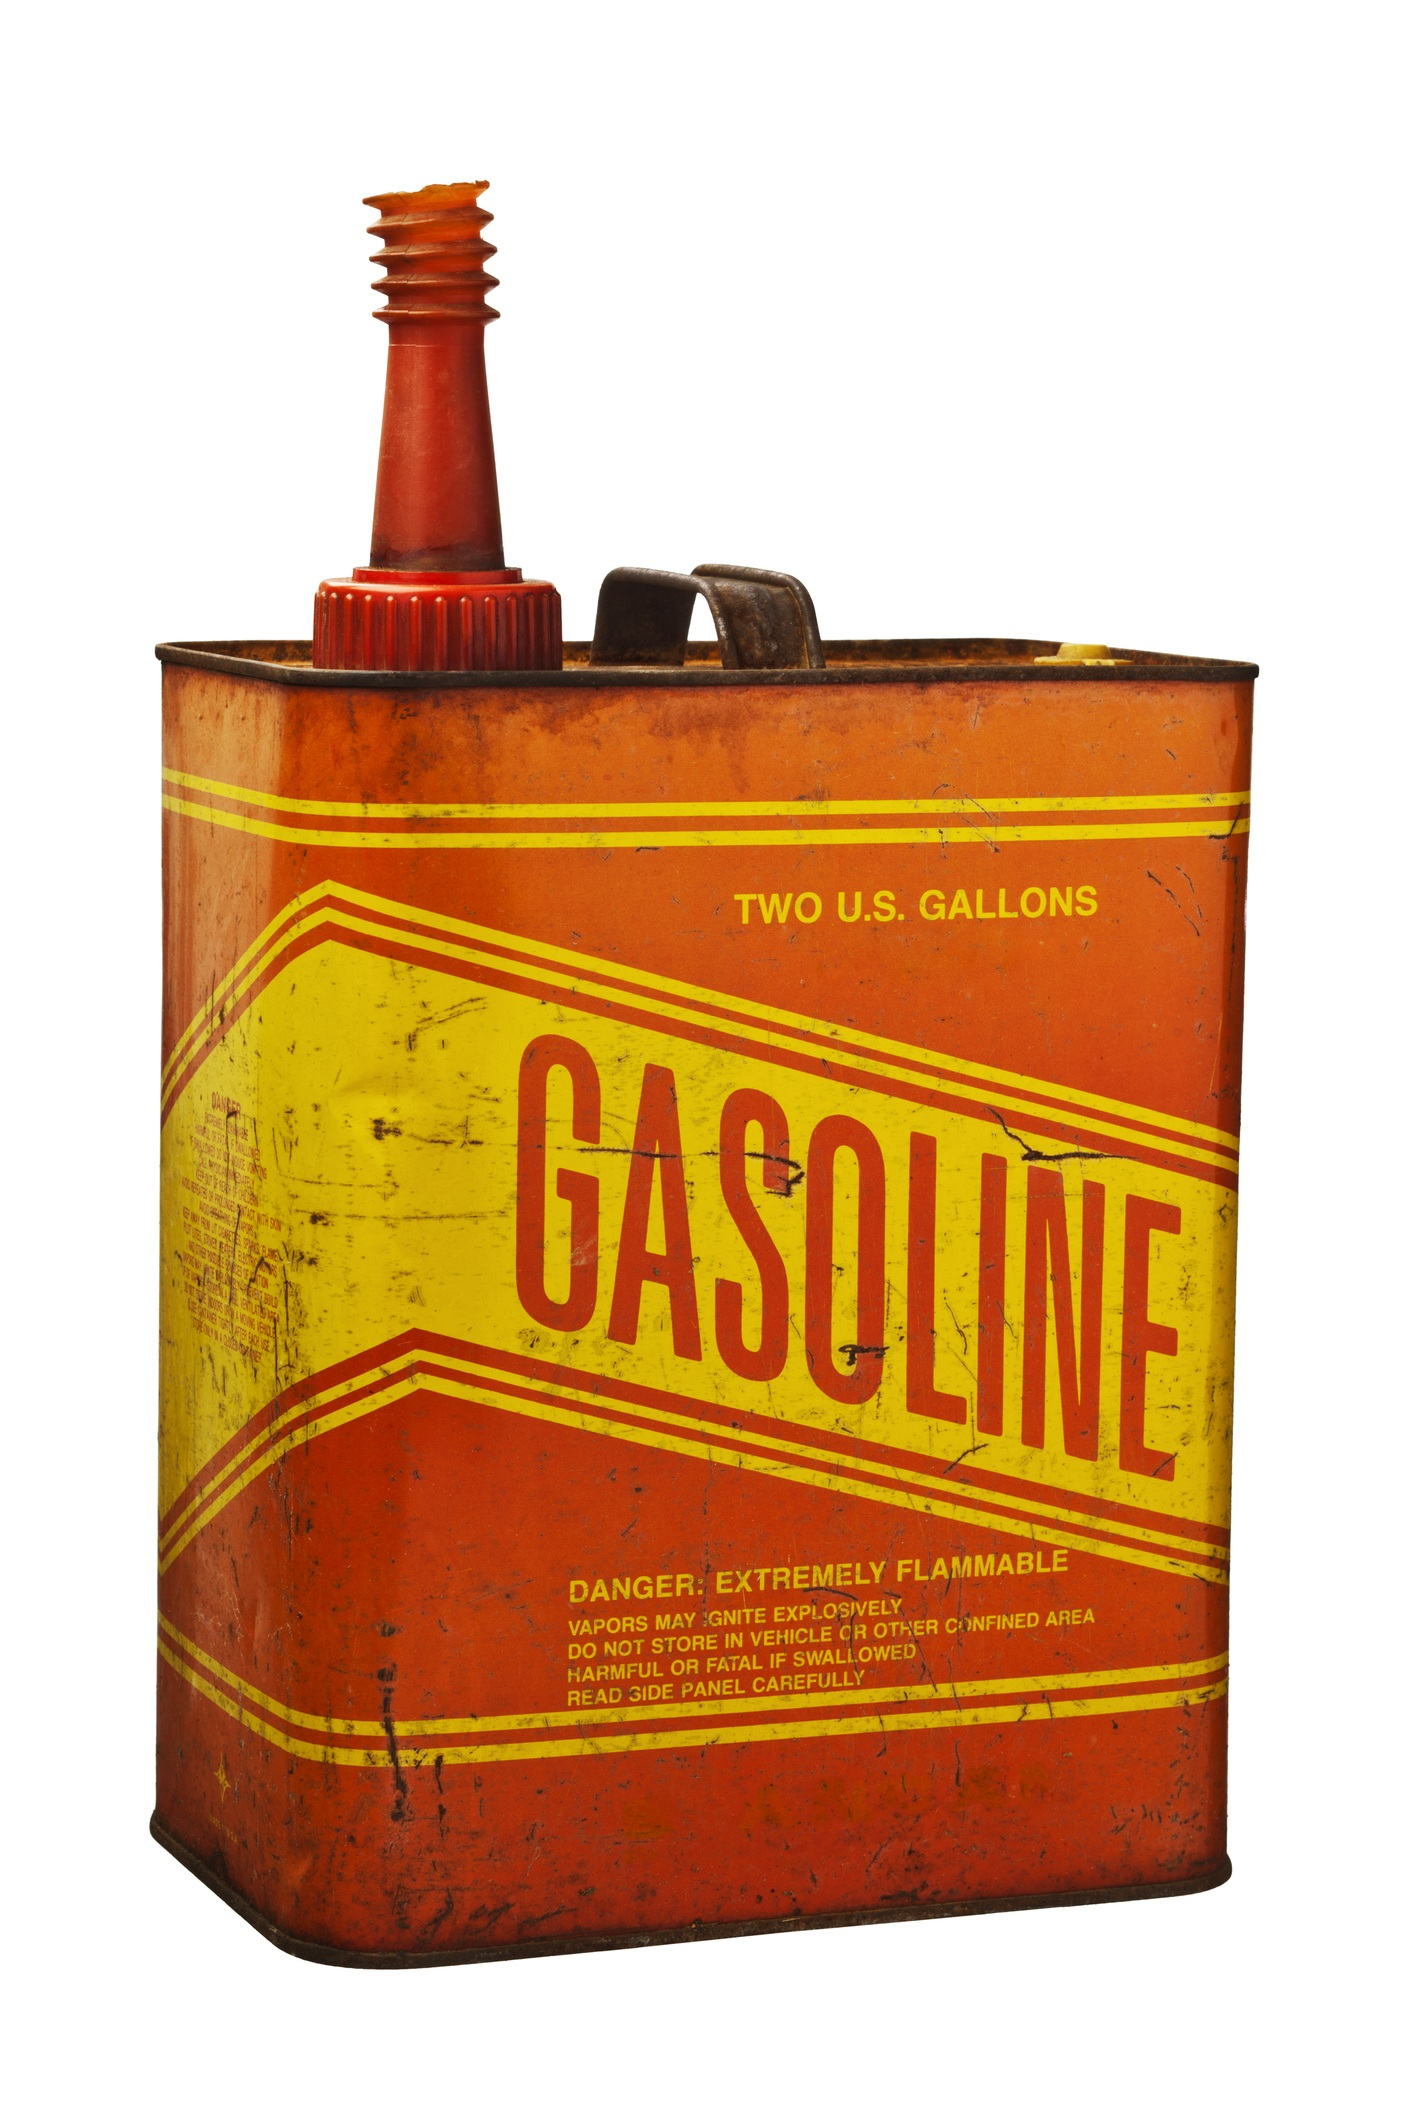 Red and yellow gasoline can